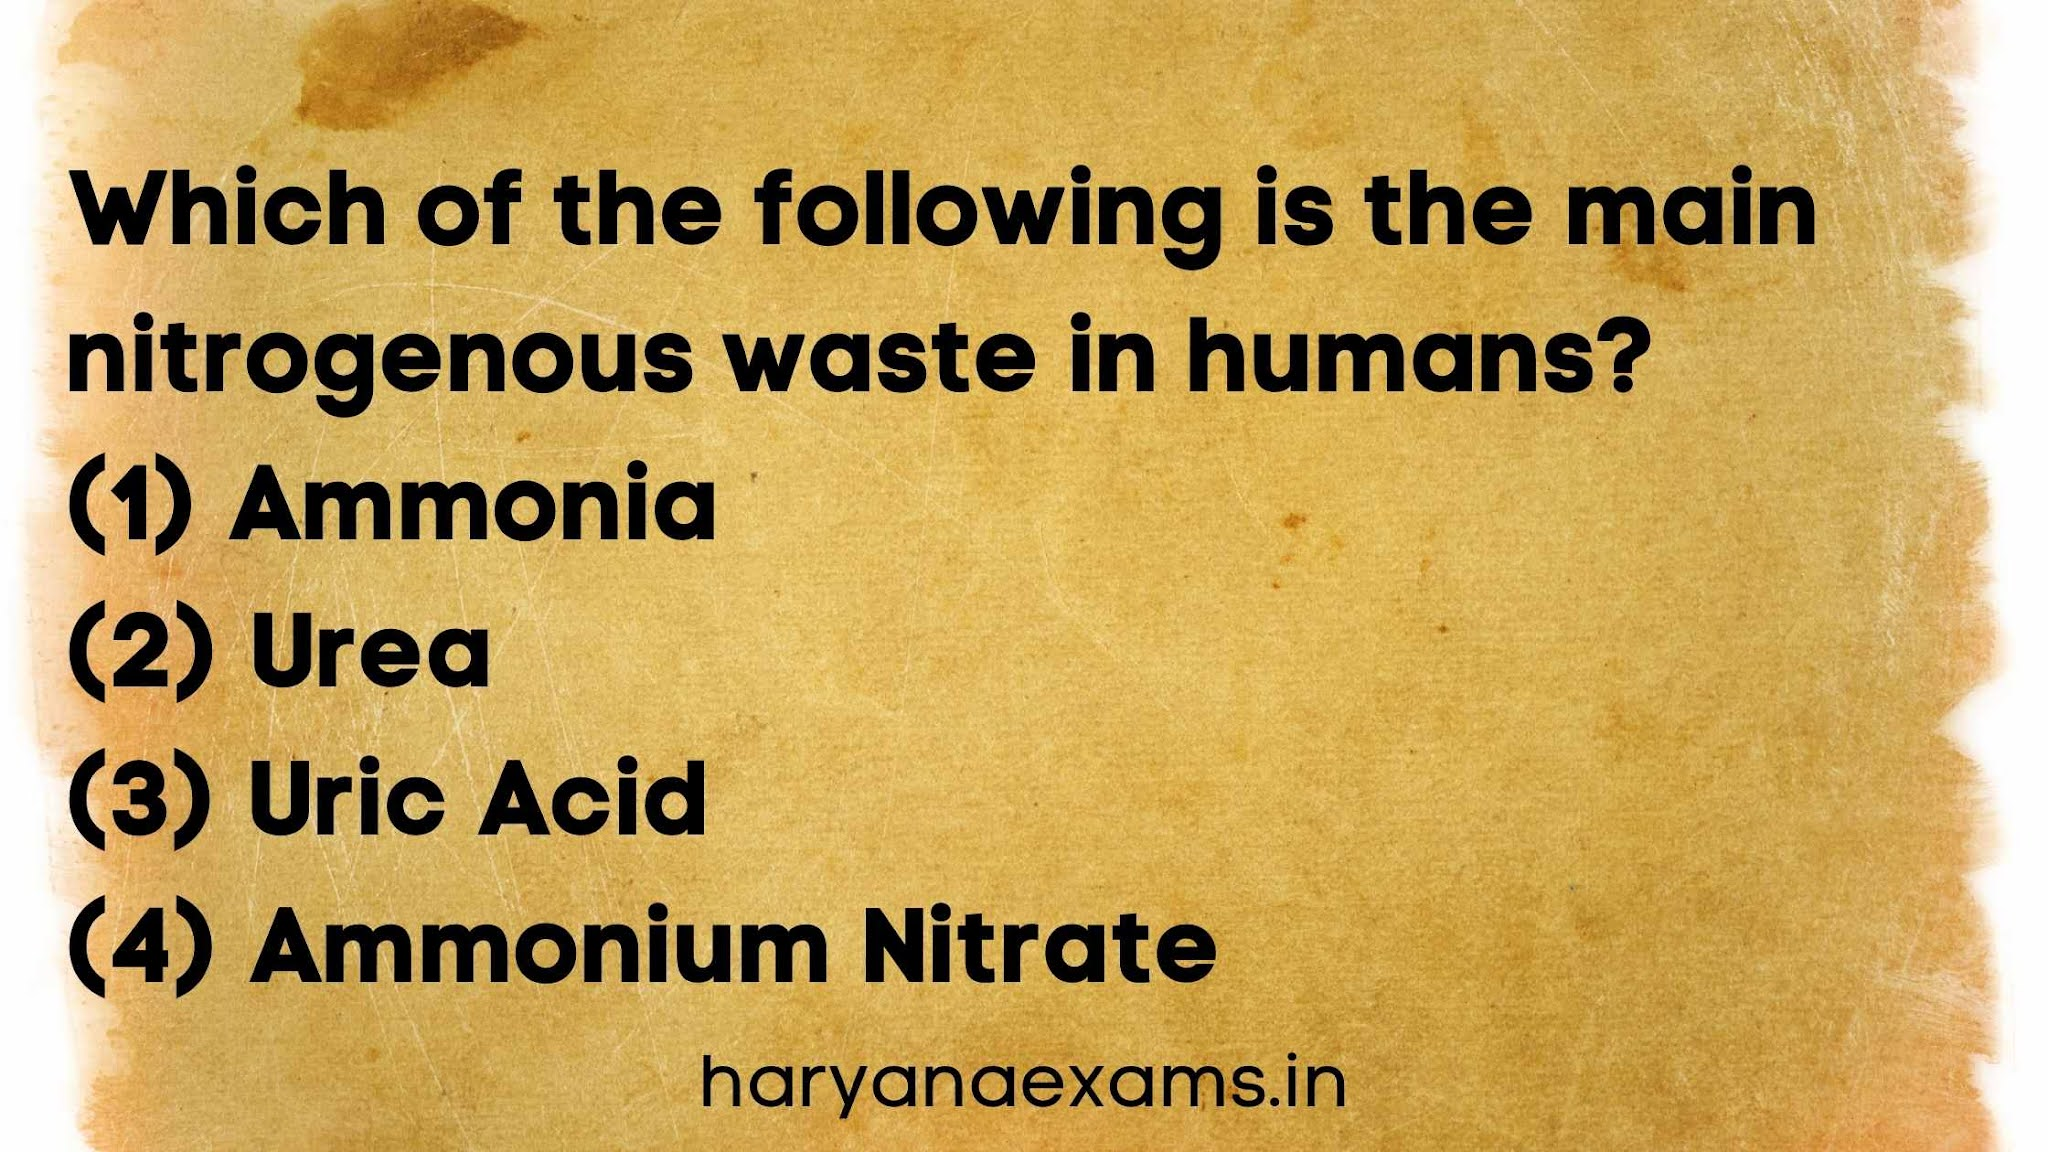 Which of the following is the main nitrogenous waste in humans?   (1) Ammonia   (2) Urea   (3) Uric Acid   (4) Ammonium Nitrate